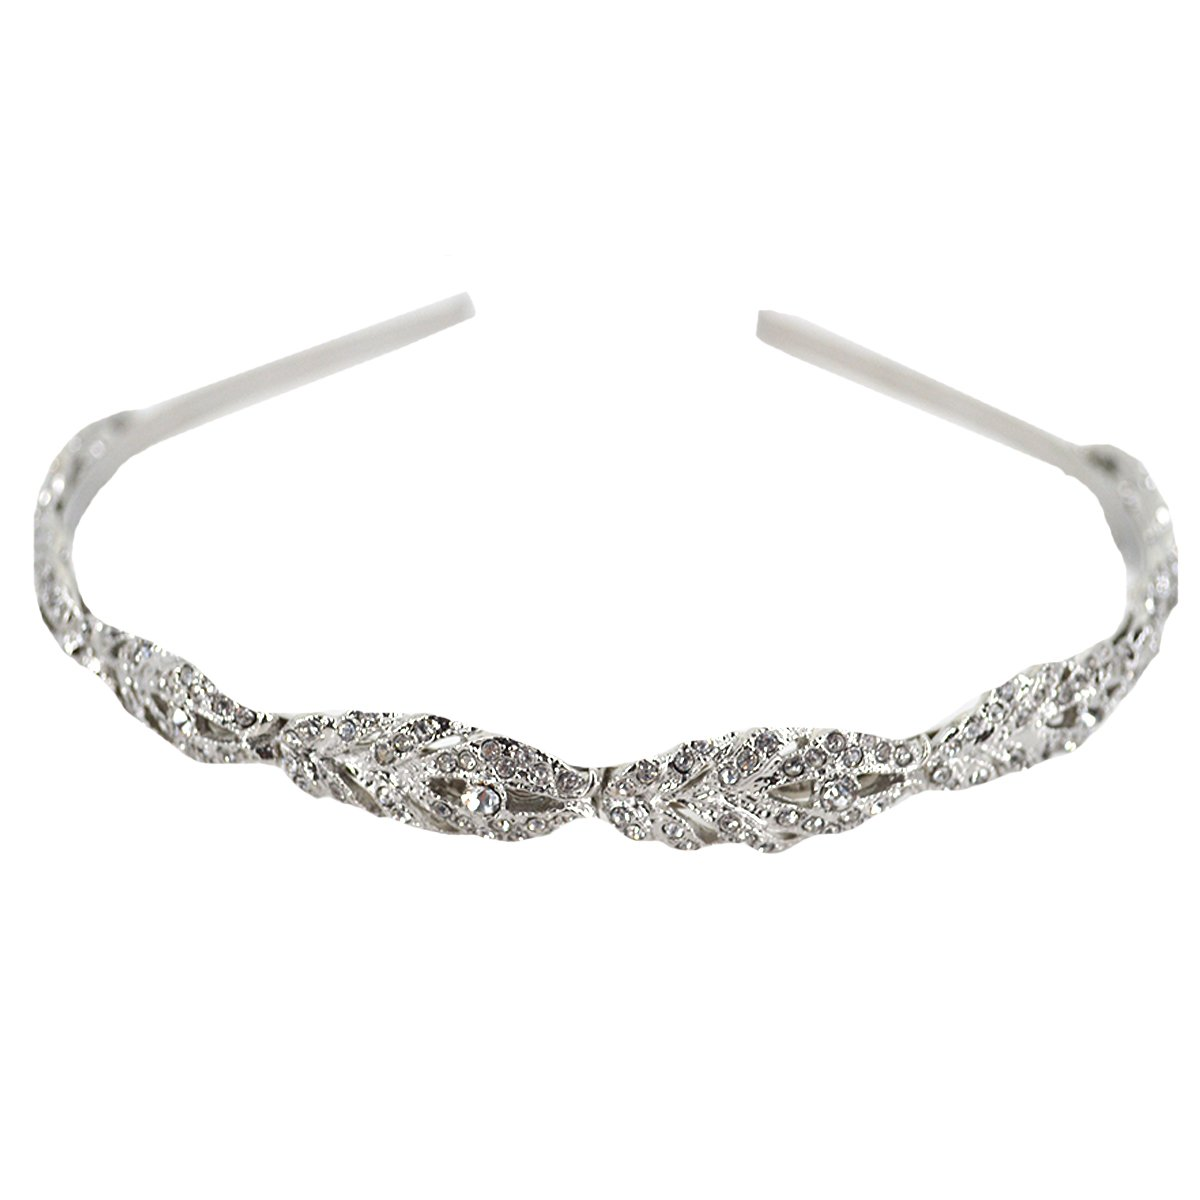 Sherry Headband Bridal Bridesmaid Flower Girl Crystal Hair Band Wedding Tiara Hair Accessories (Silver)